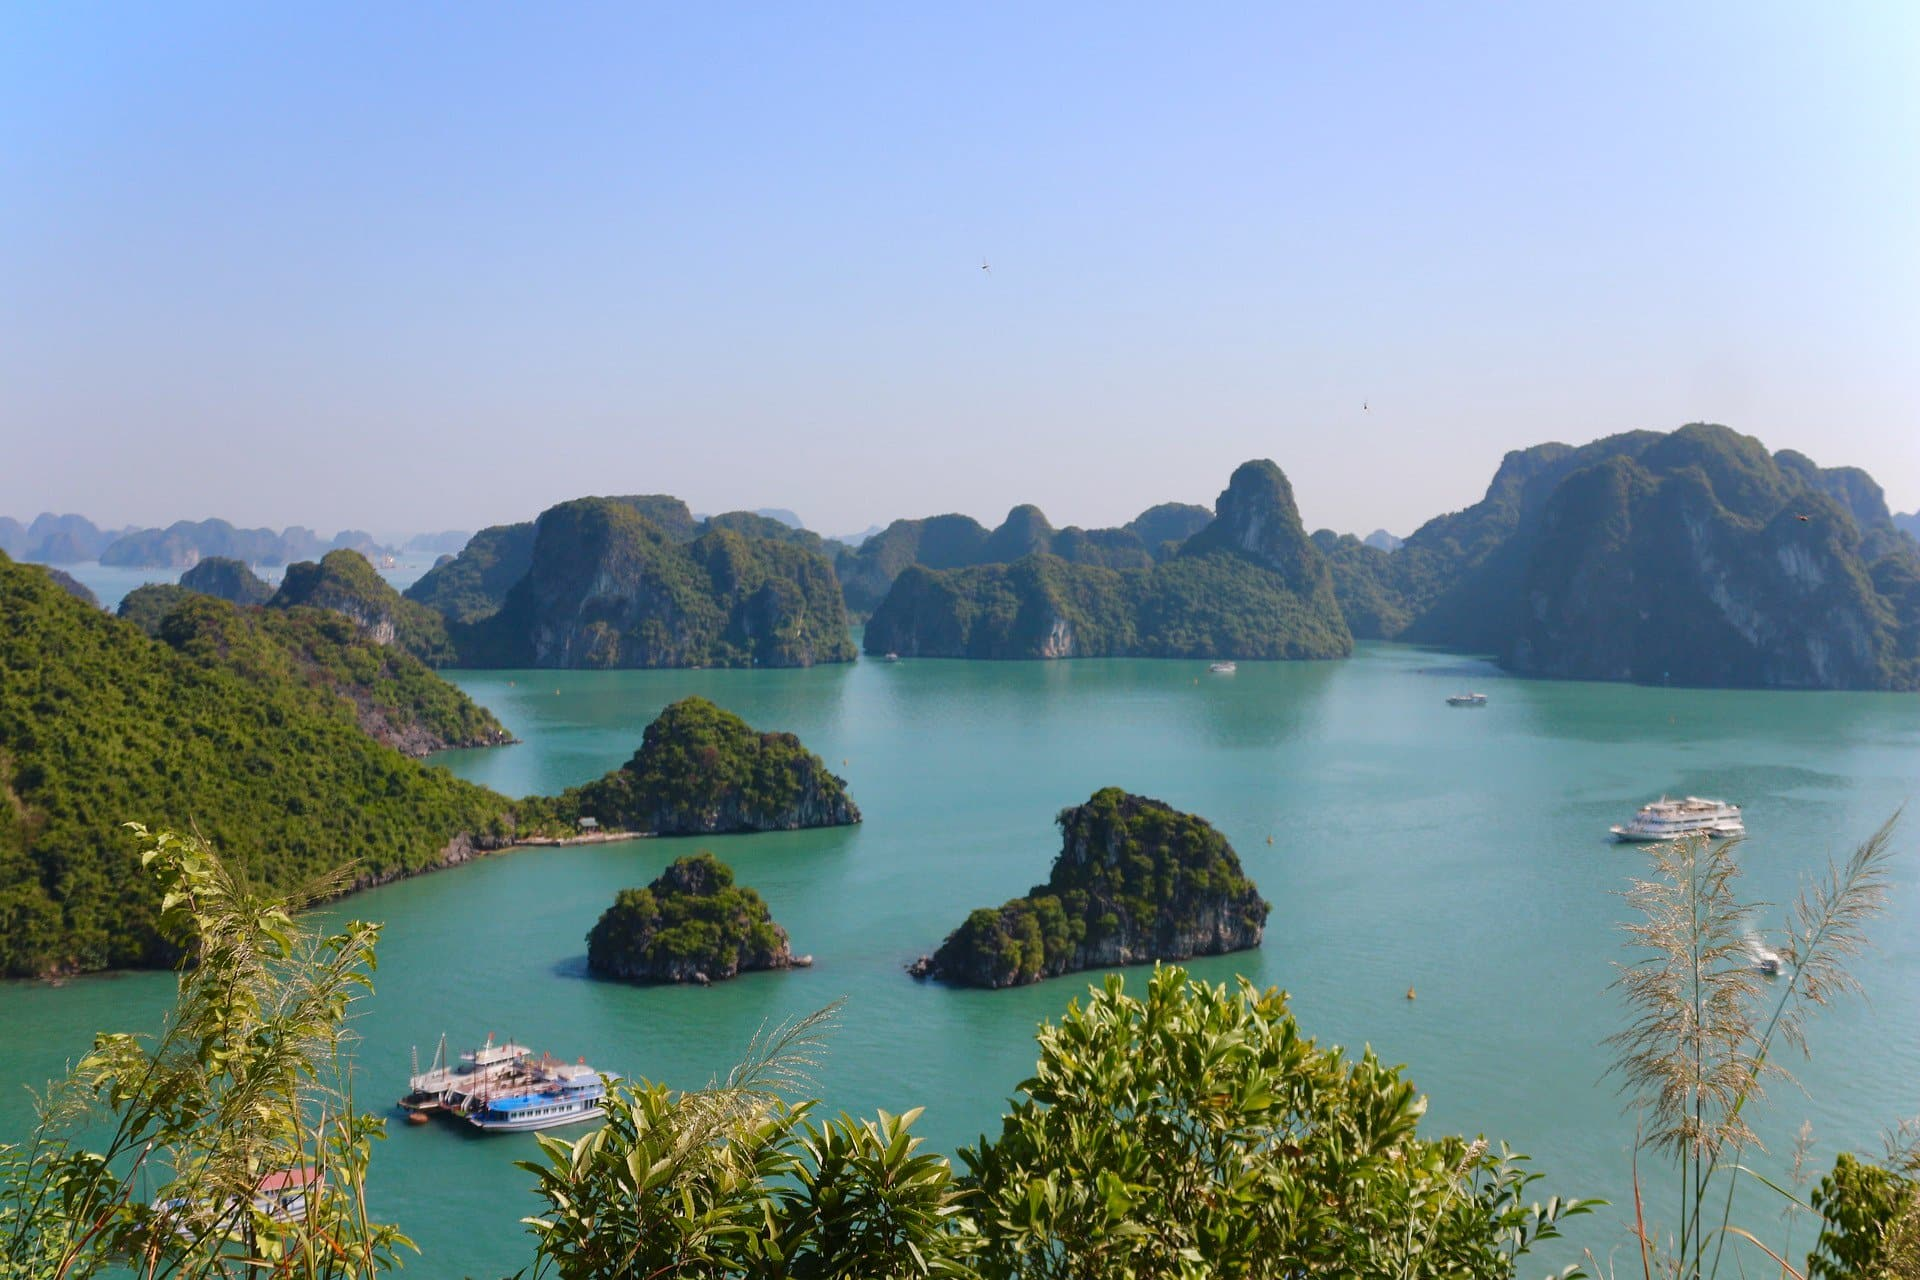 What are your top 10 places in the world to visit? Here are a couple of places that we think are absolutely amazing!